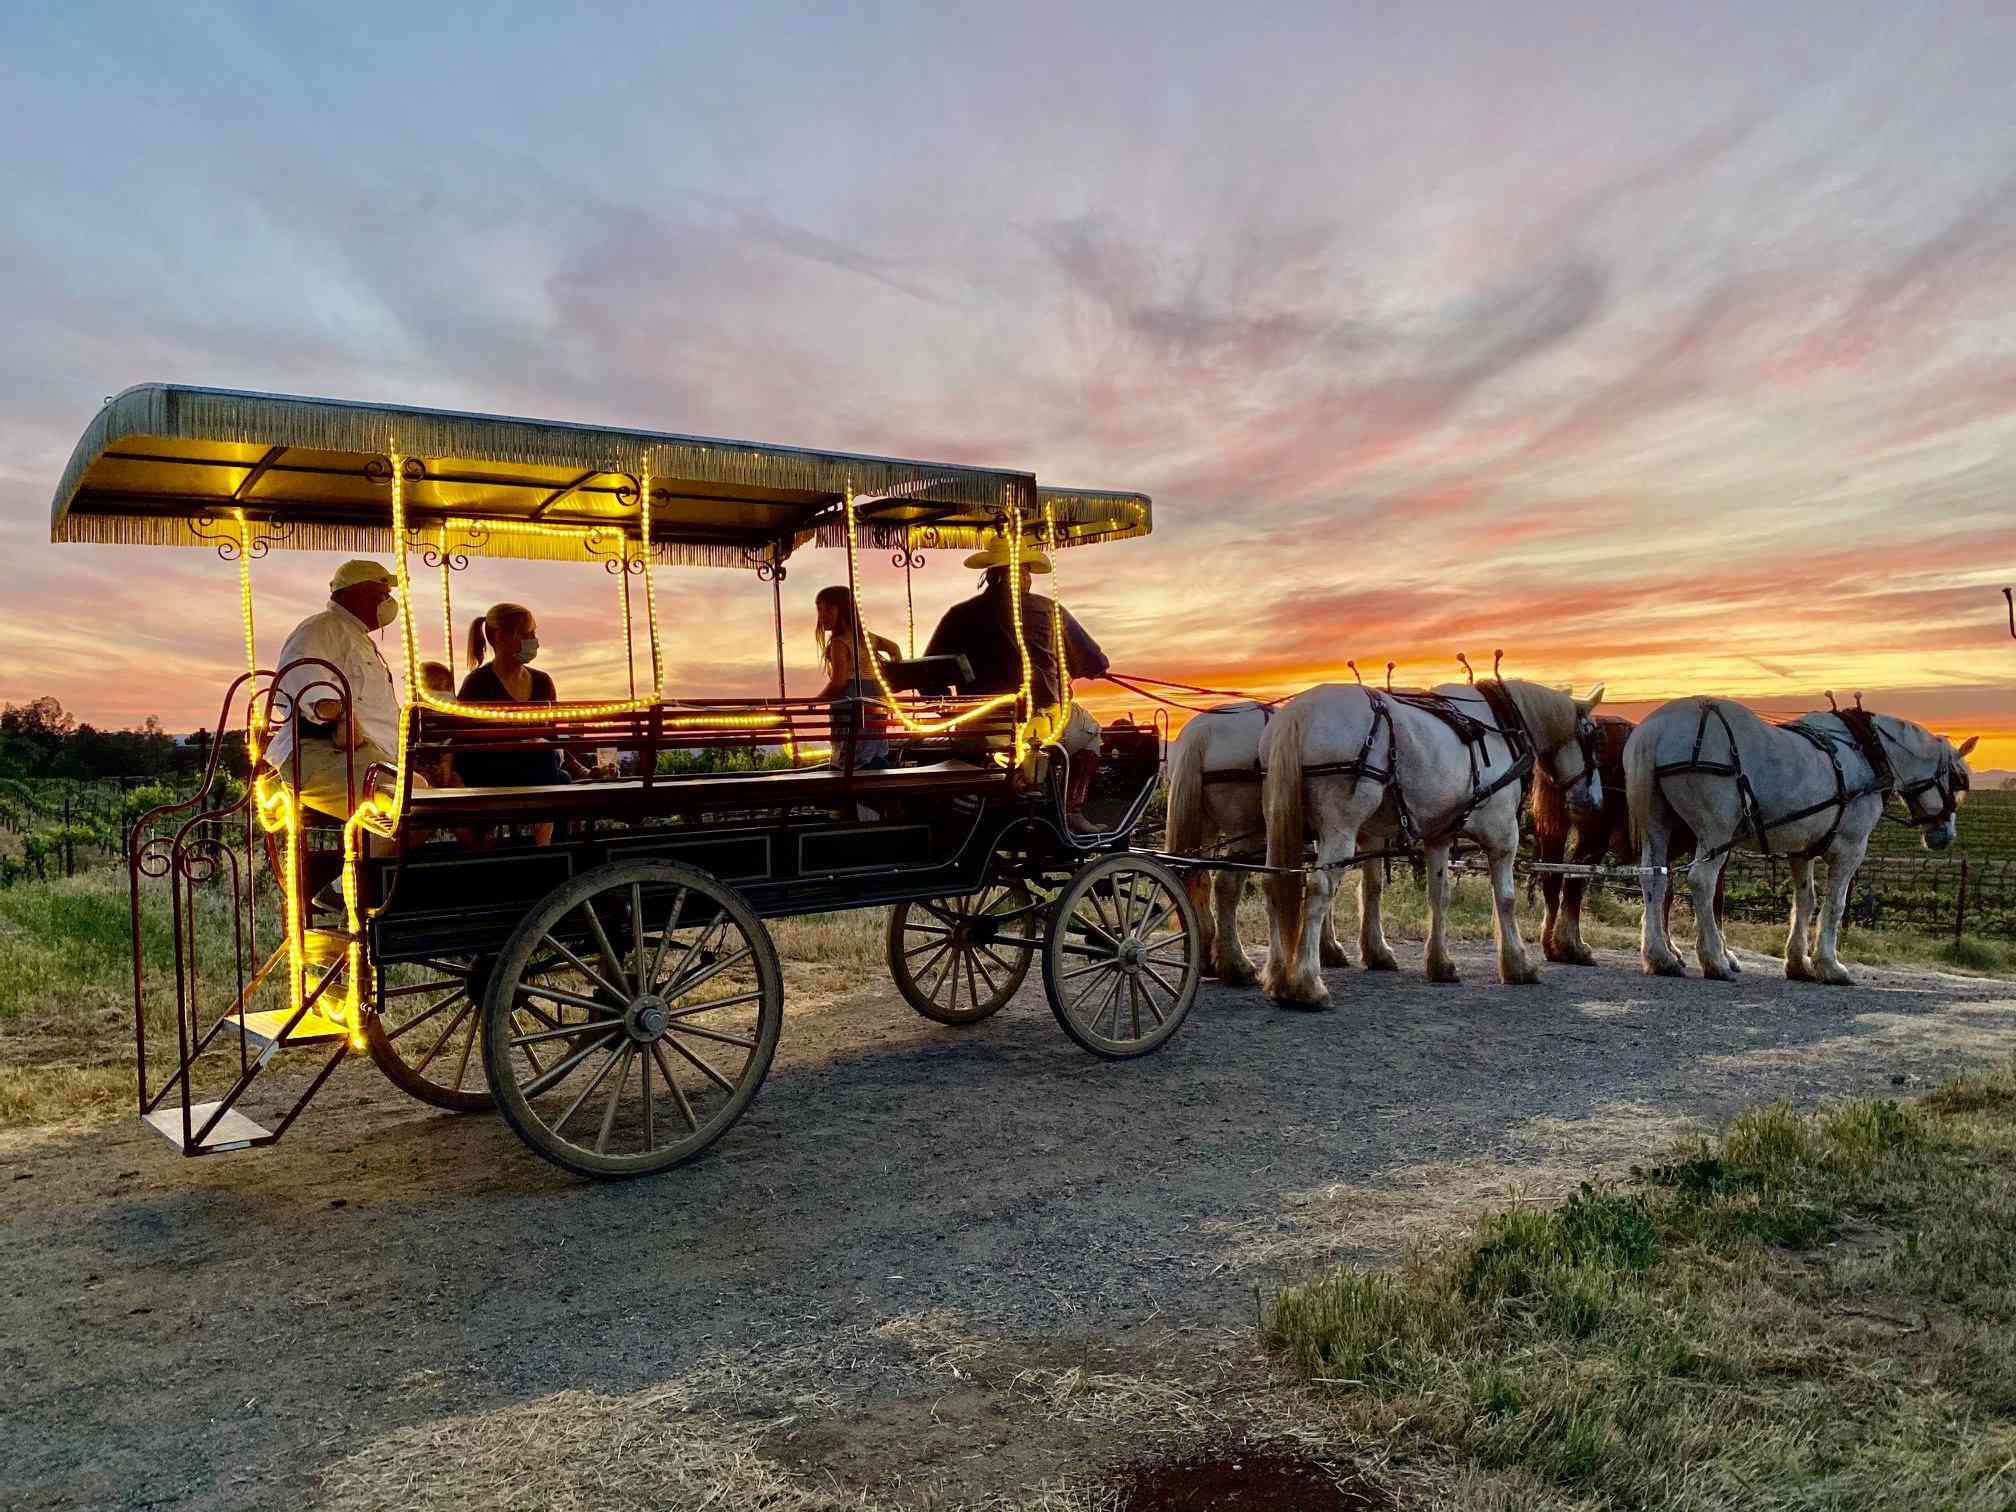 illuminated open-air horse-drawn carriage stopped on a path at sunset